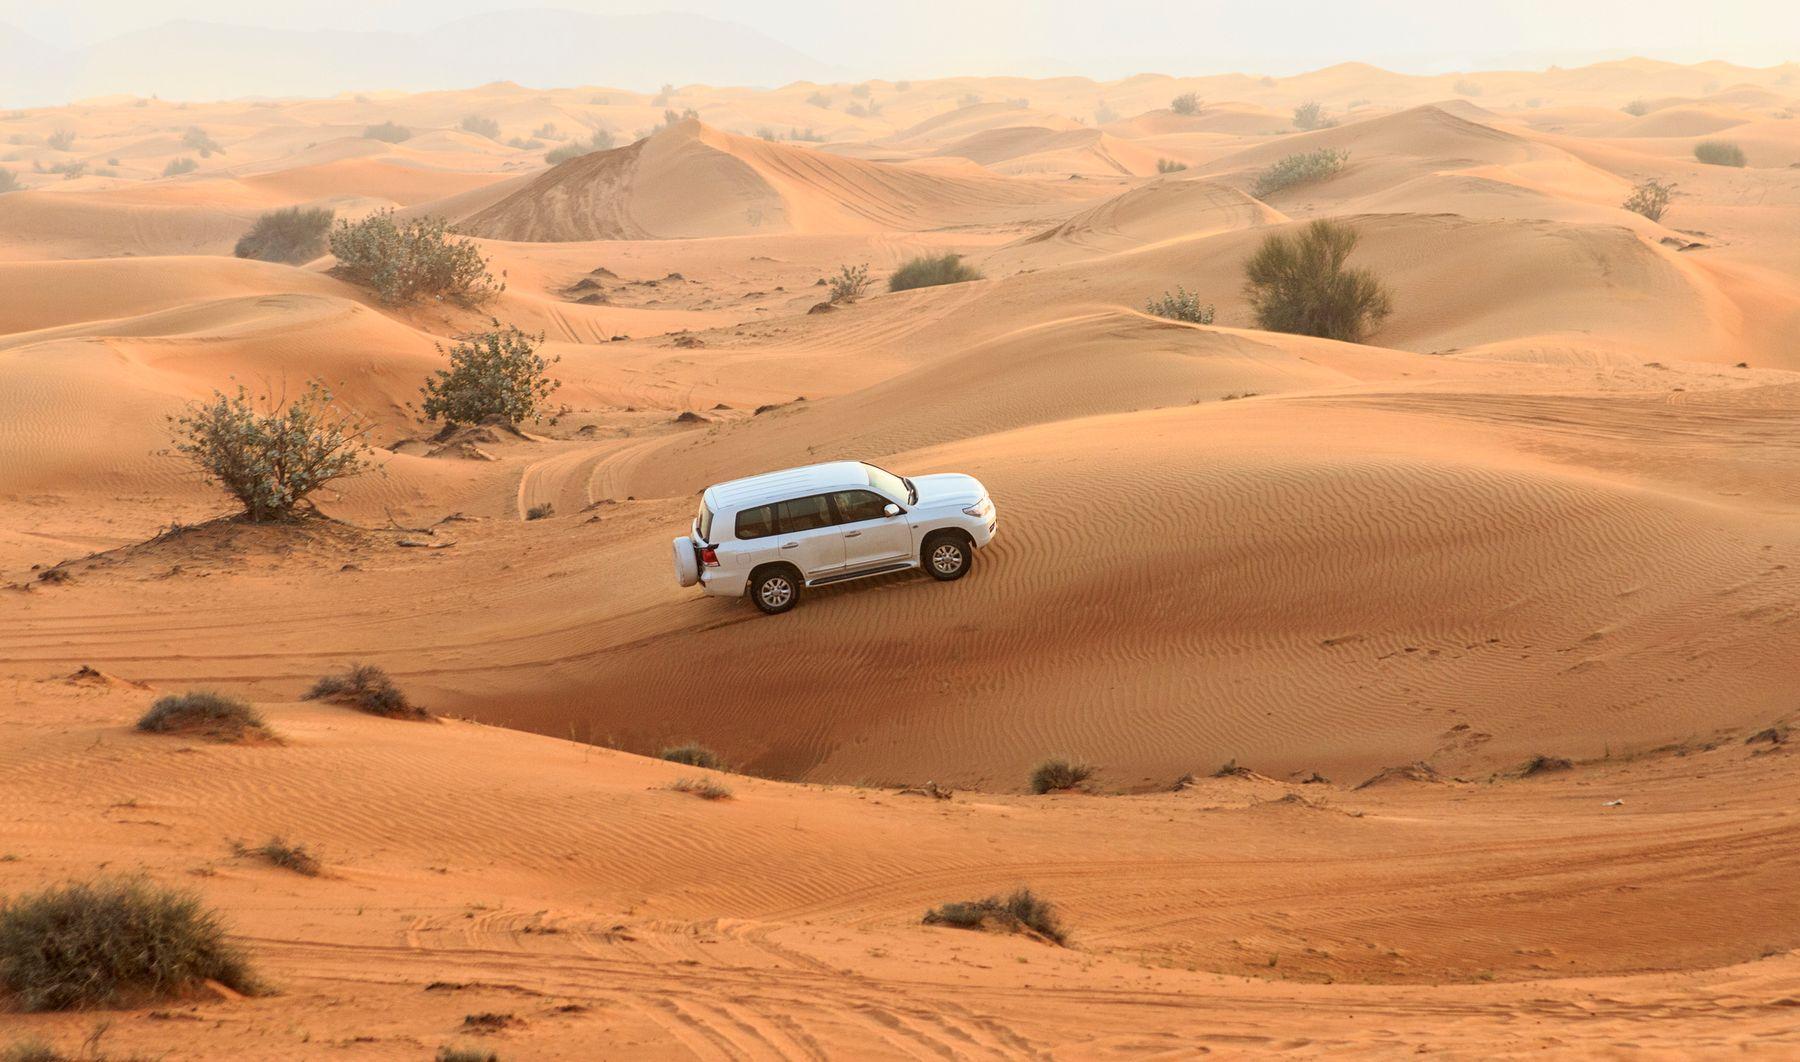 Dune bashing is a great adventure holiday abroad, and inolves driving through the desert